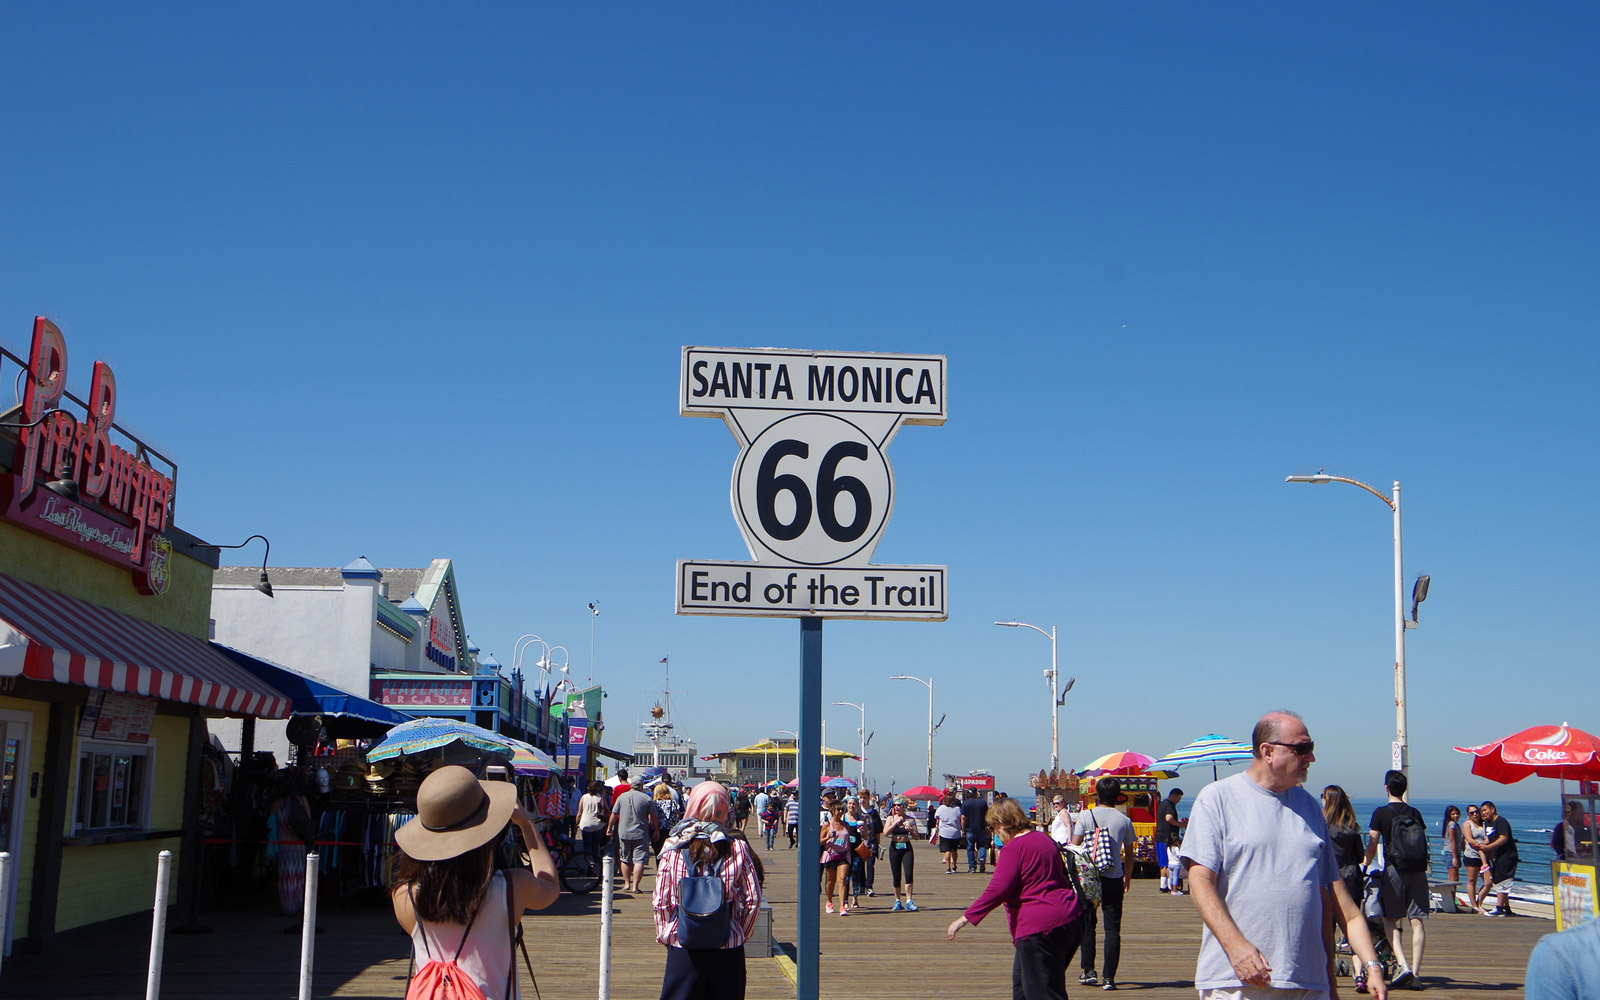 Santa Monica, USA – April 30, 2017: Route 66 Santa Monica End of Trail sign on Santa Monica Pier.  Route 66 opened in 1926 connects from Chicago to Santa Monica and has a total length of 3755 km. A lot of people visit here.